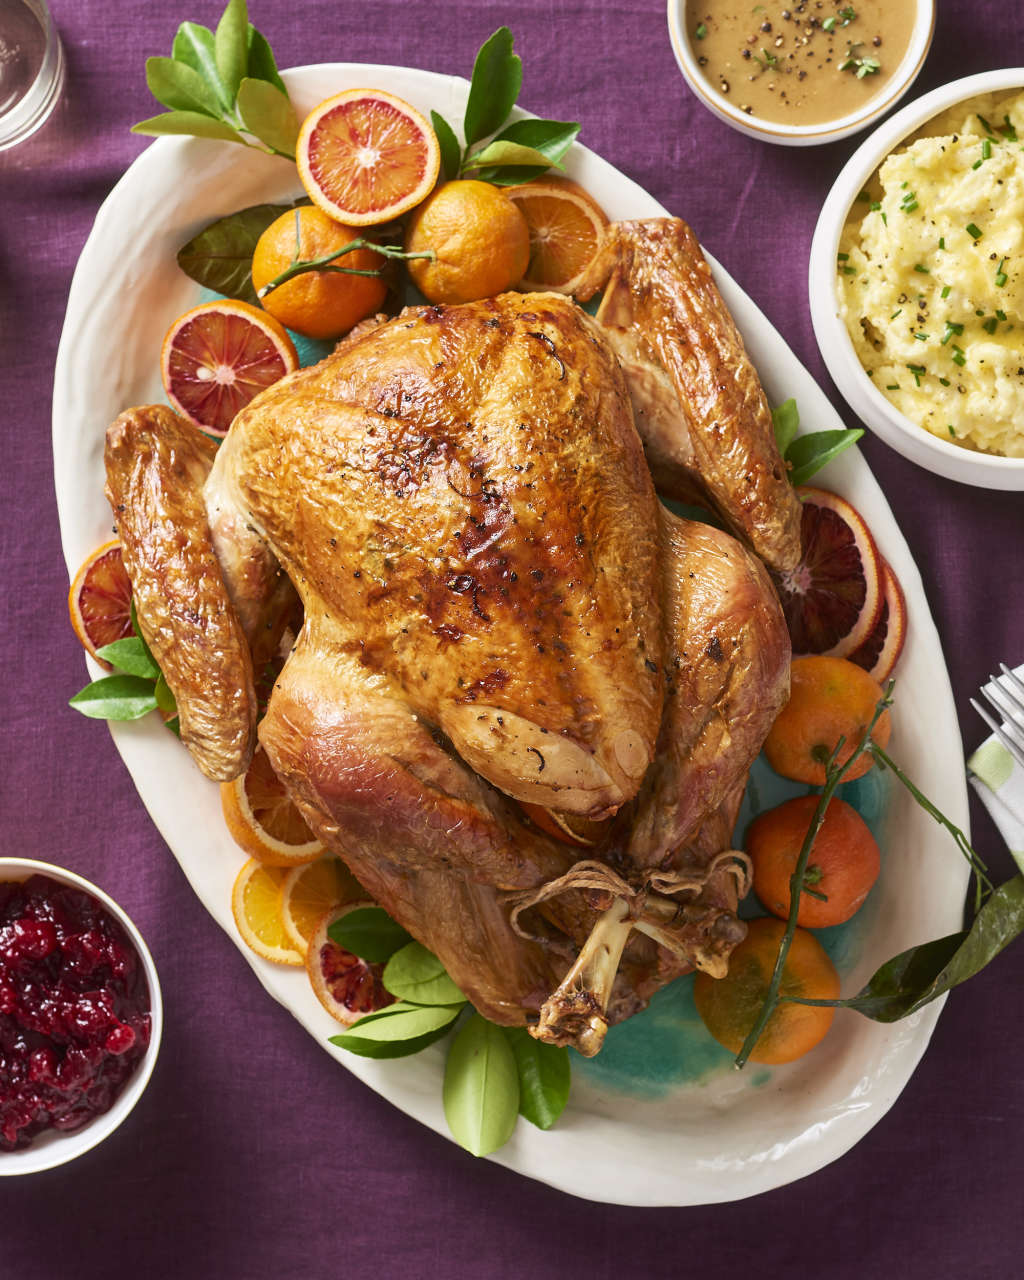 Turkey Temperature How To Check When Is Done Kitchn Parts Of A Chicken Diagram Meat Bone